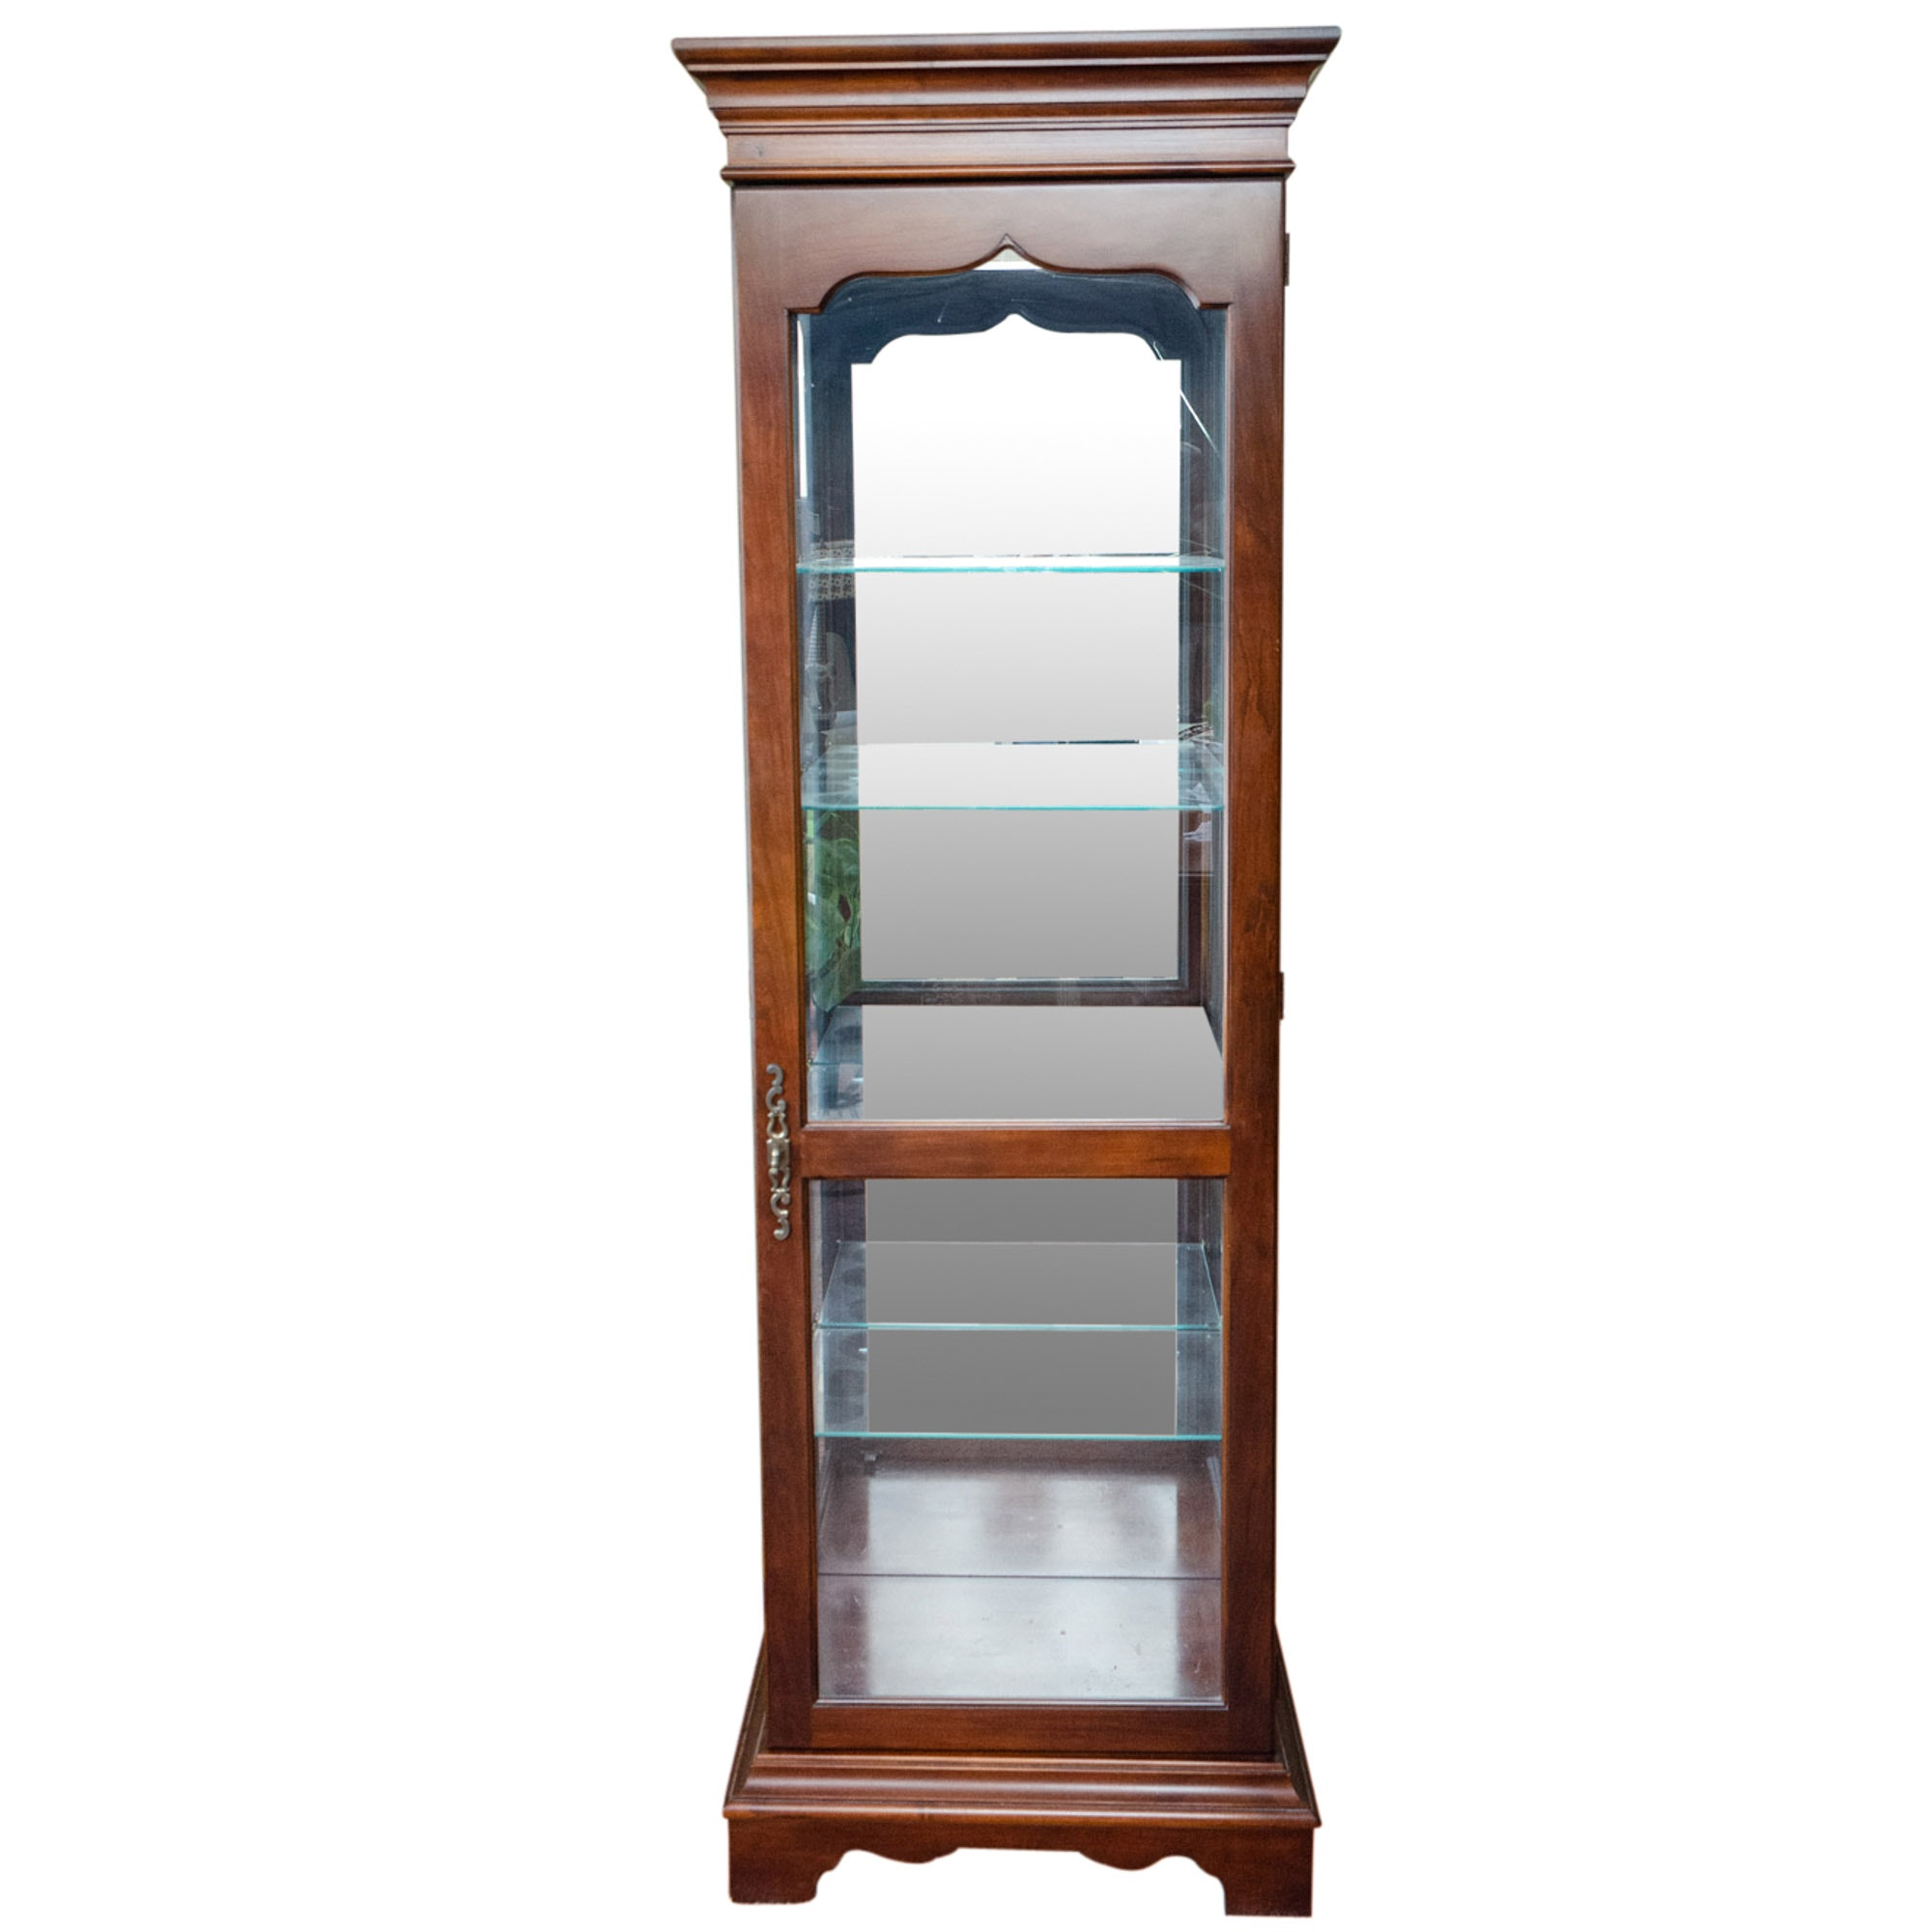 Drexel-Heritage Mahogany Stained Illuminated Curio Cabinet